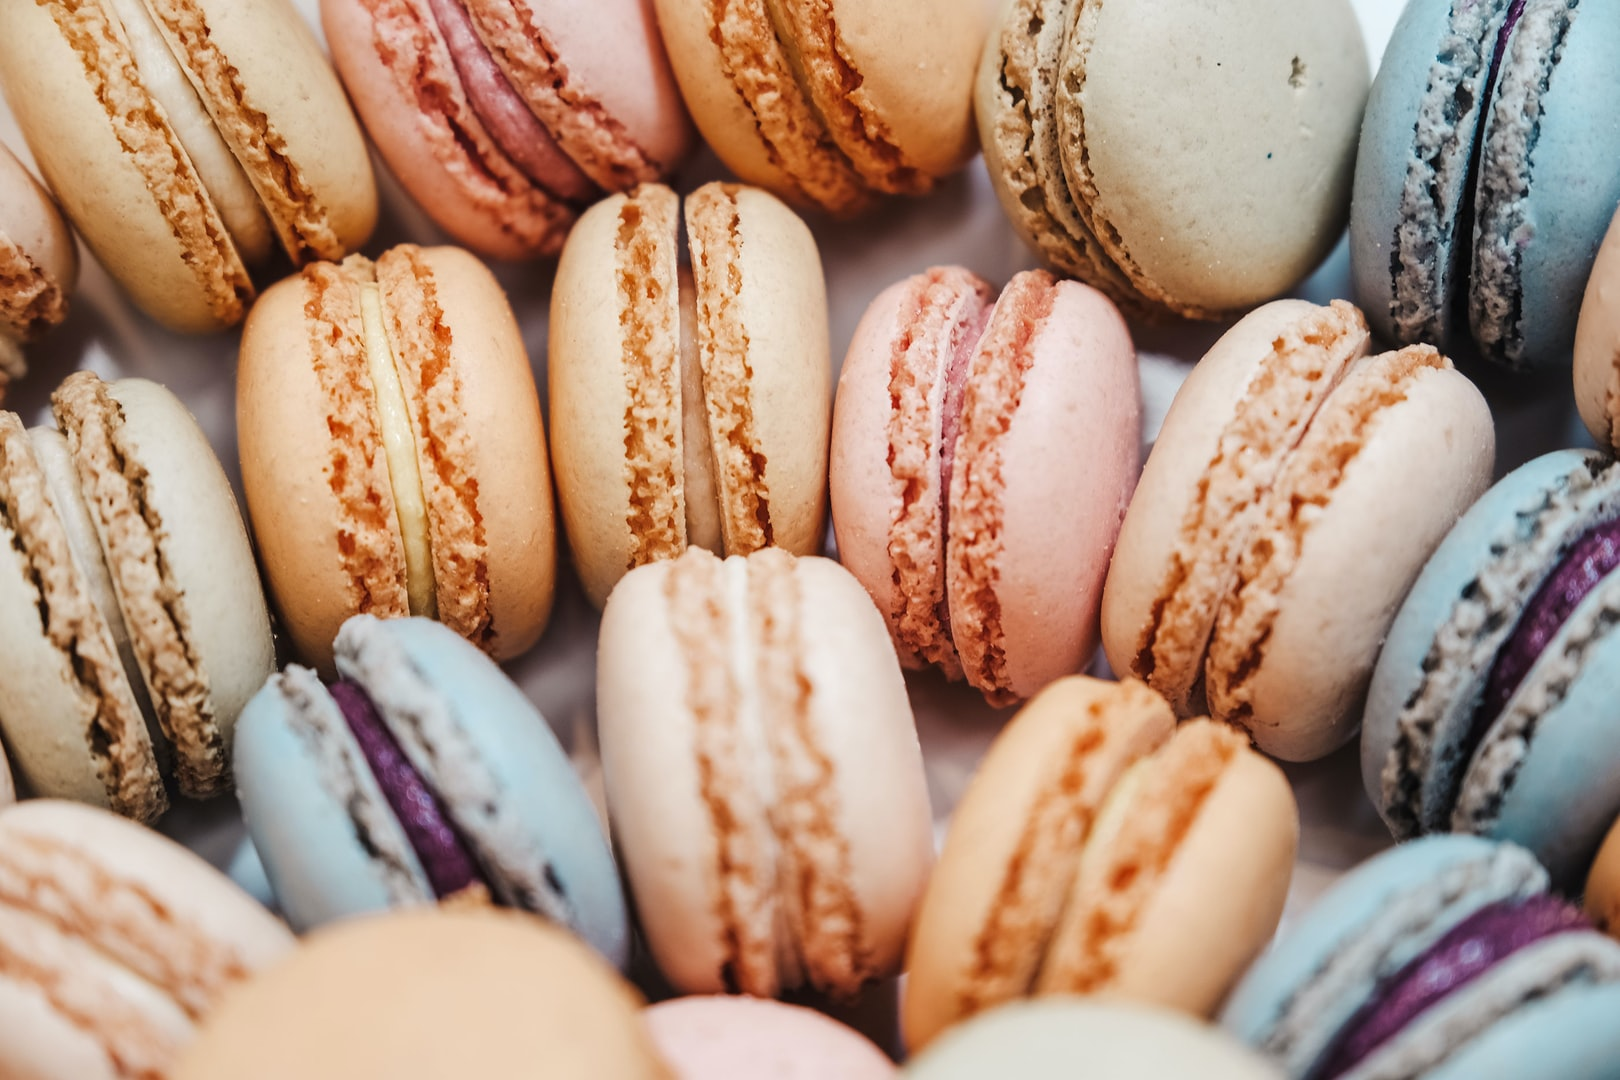 Cream-filled French macarons